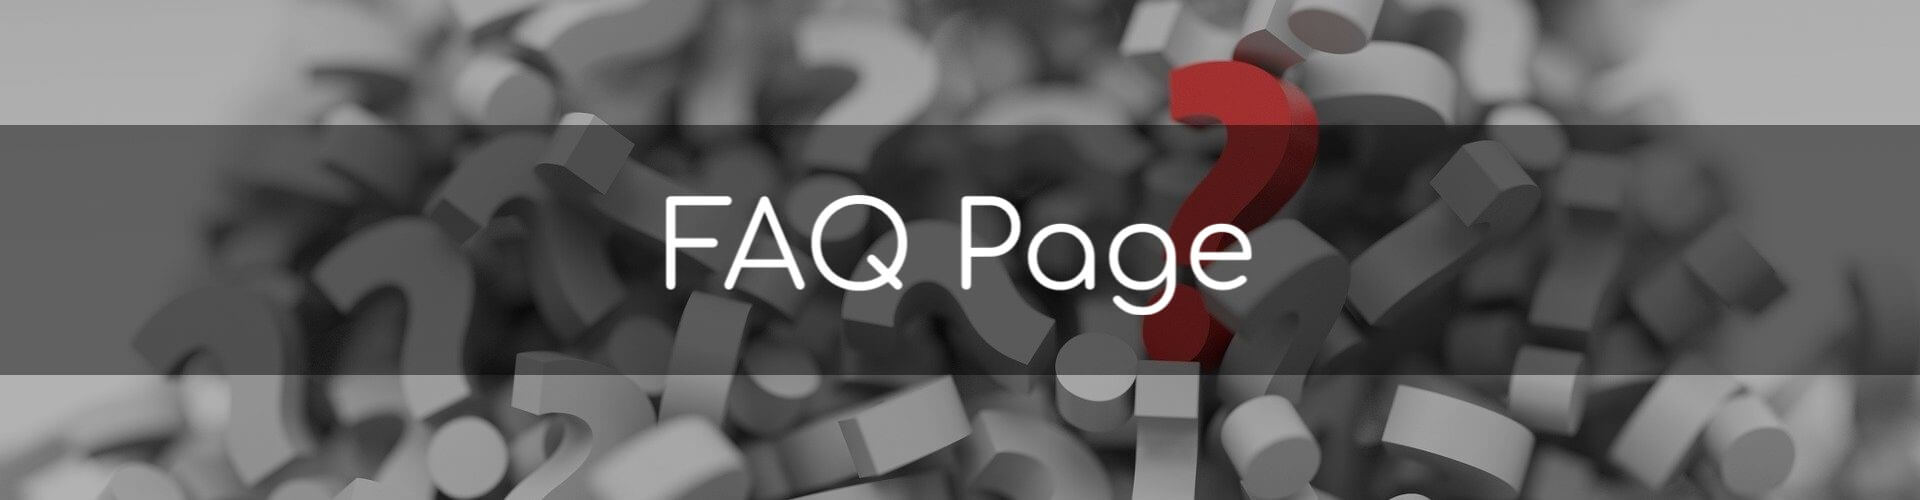 FAQ Page - Image of a pile of three dimensional question marks in a pile.